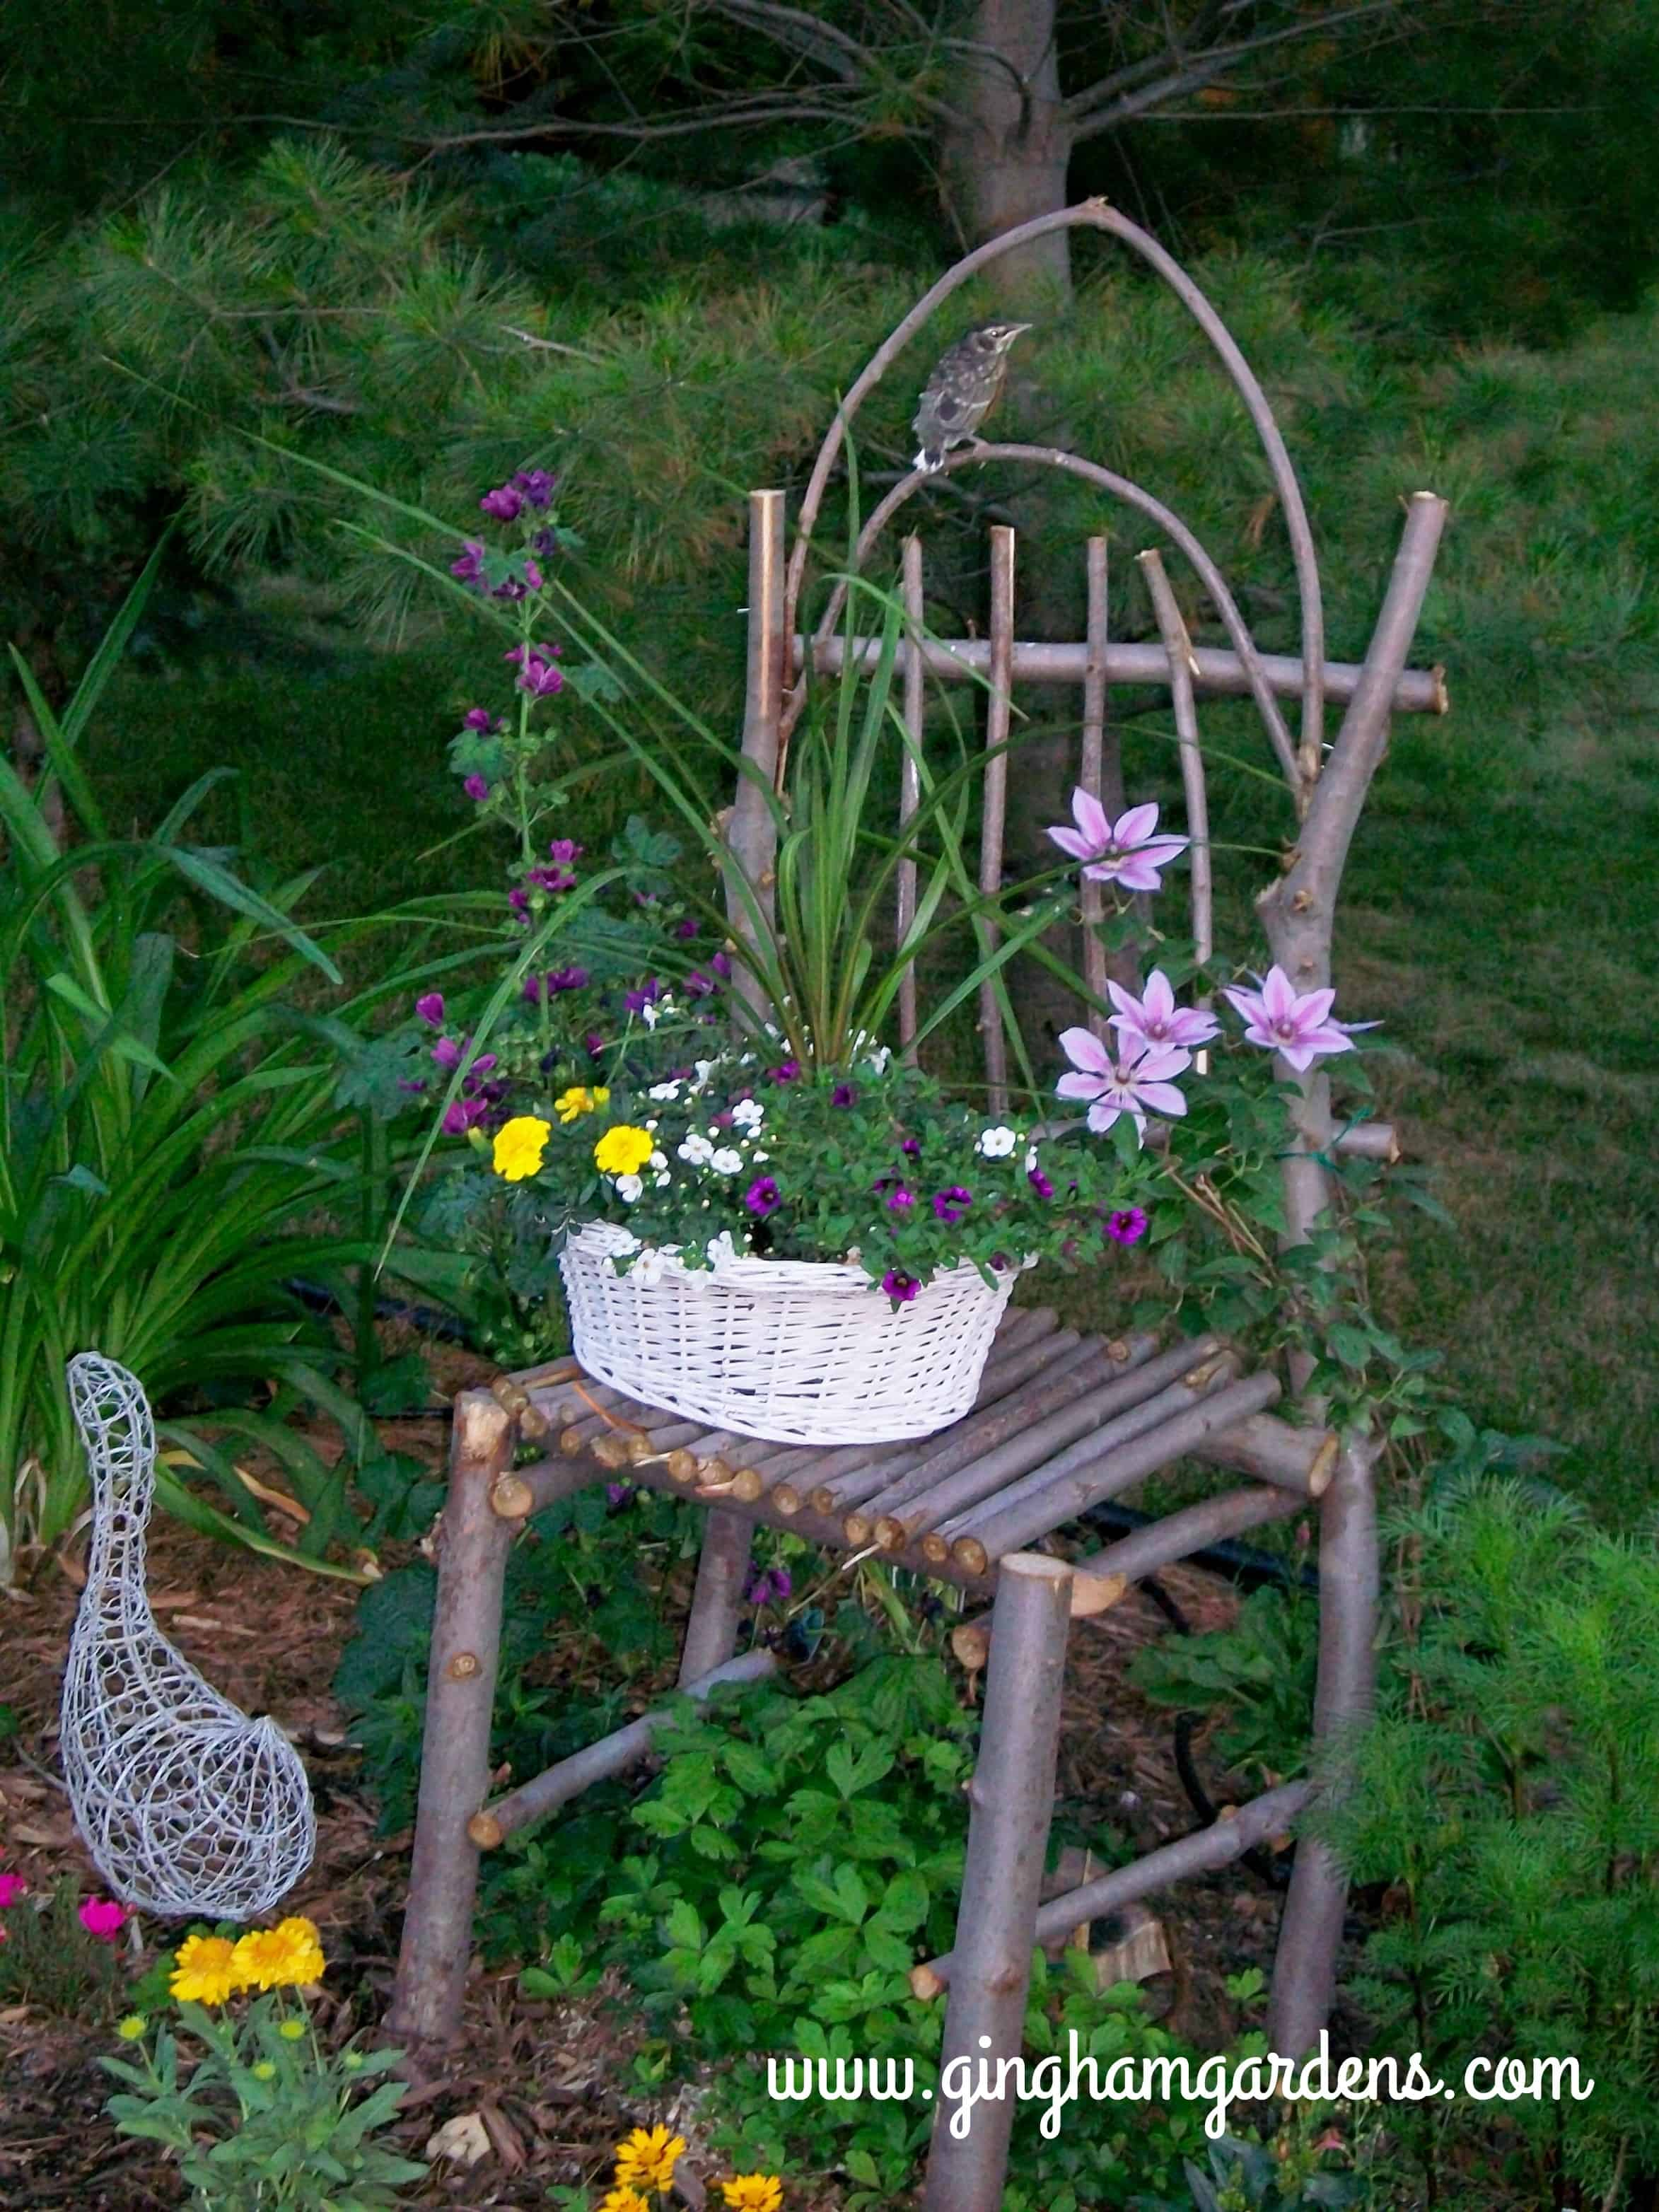 Chair Made From Maple Branches In A Flower Garden.